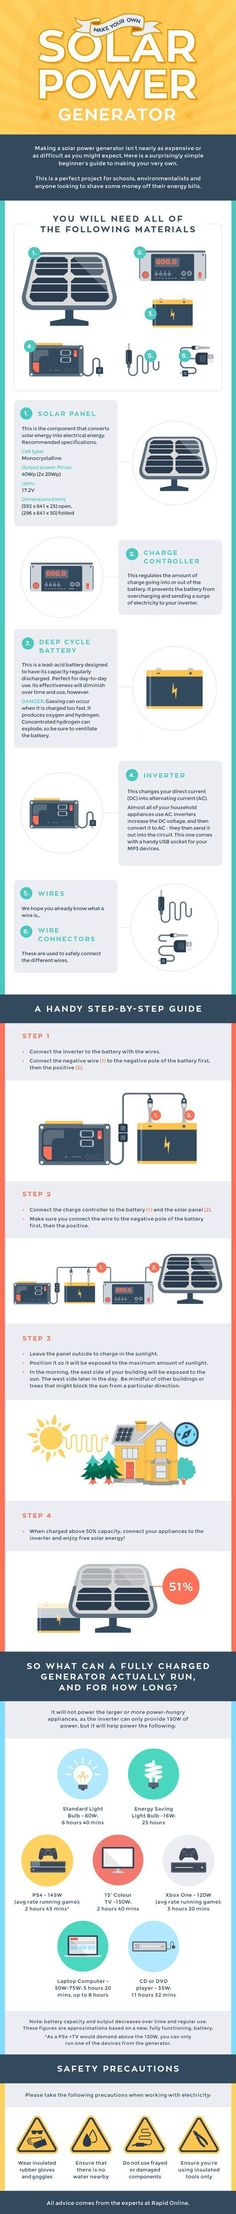 Make Your Own Solar Power Generator #infographic #Energy #SolarPower